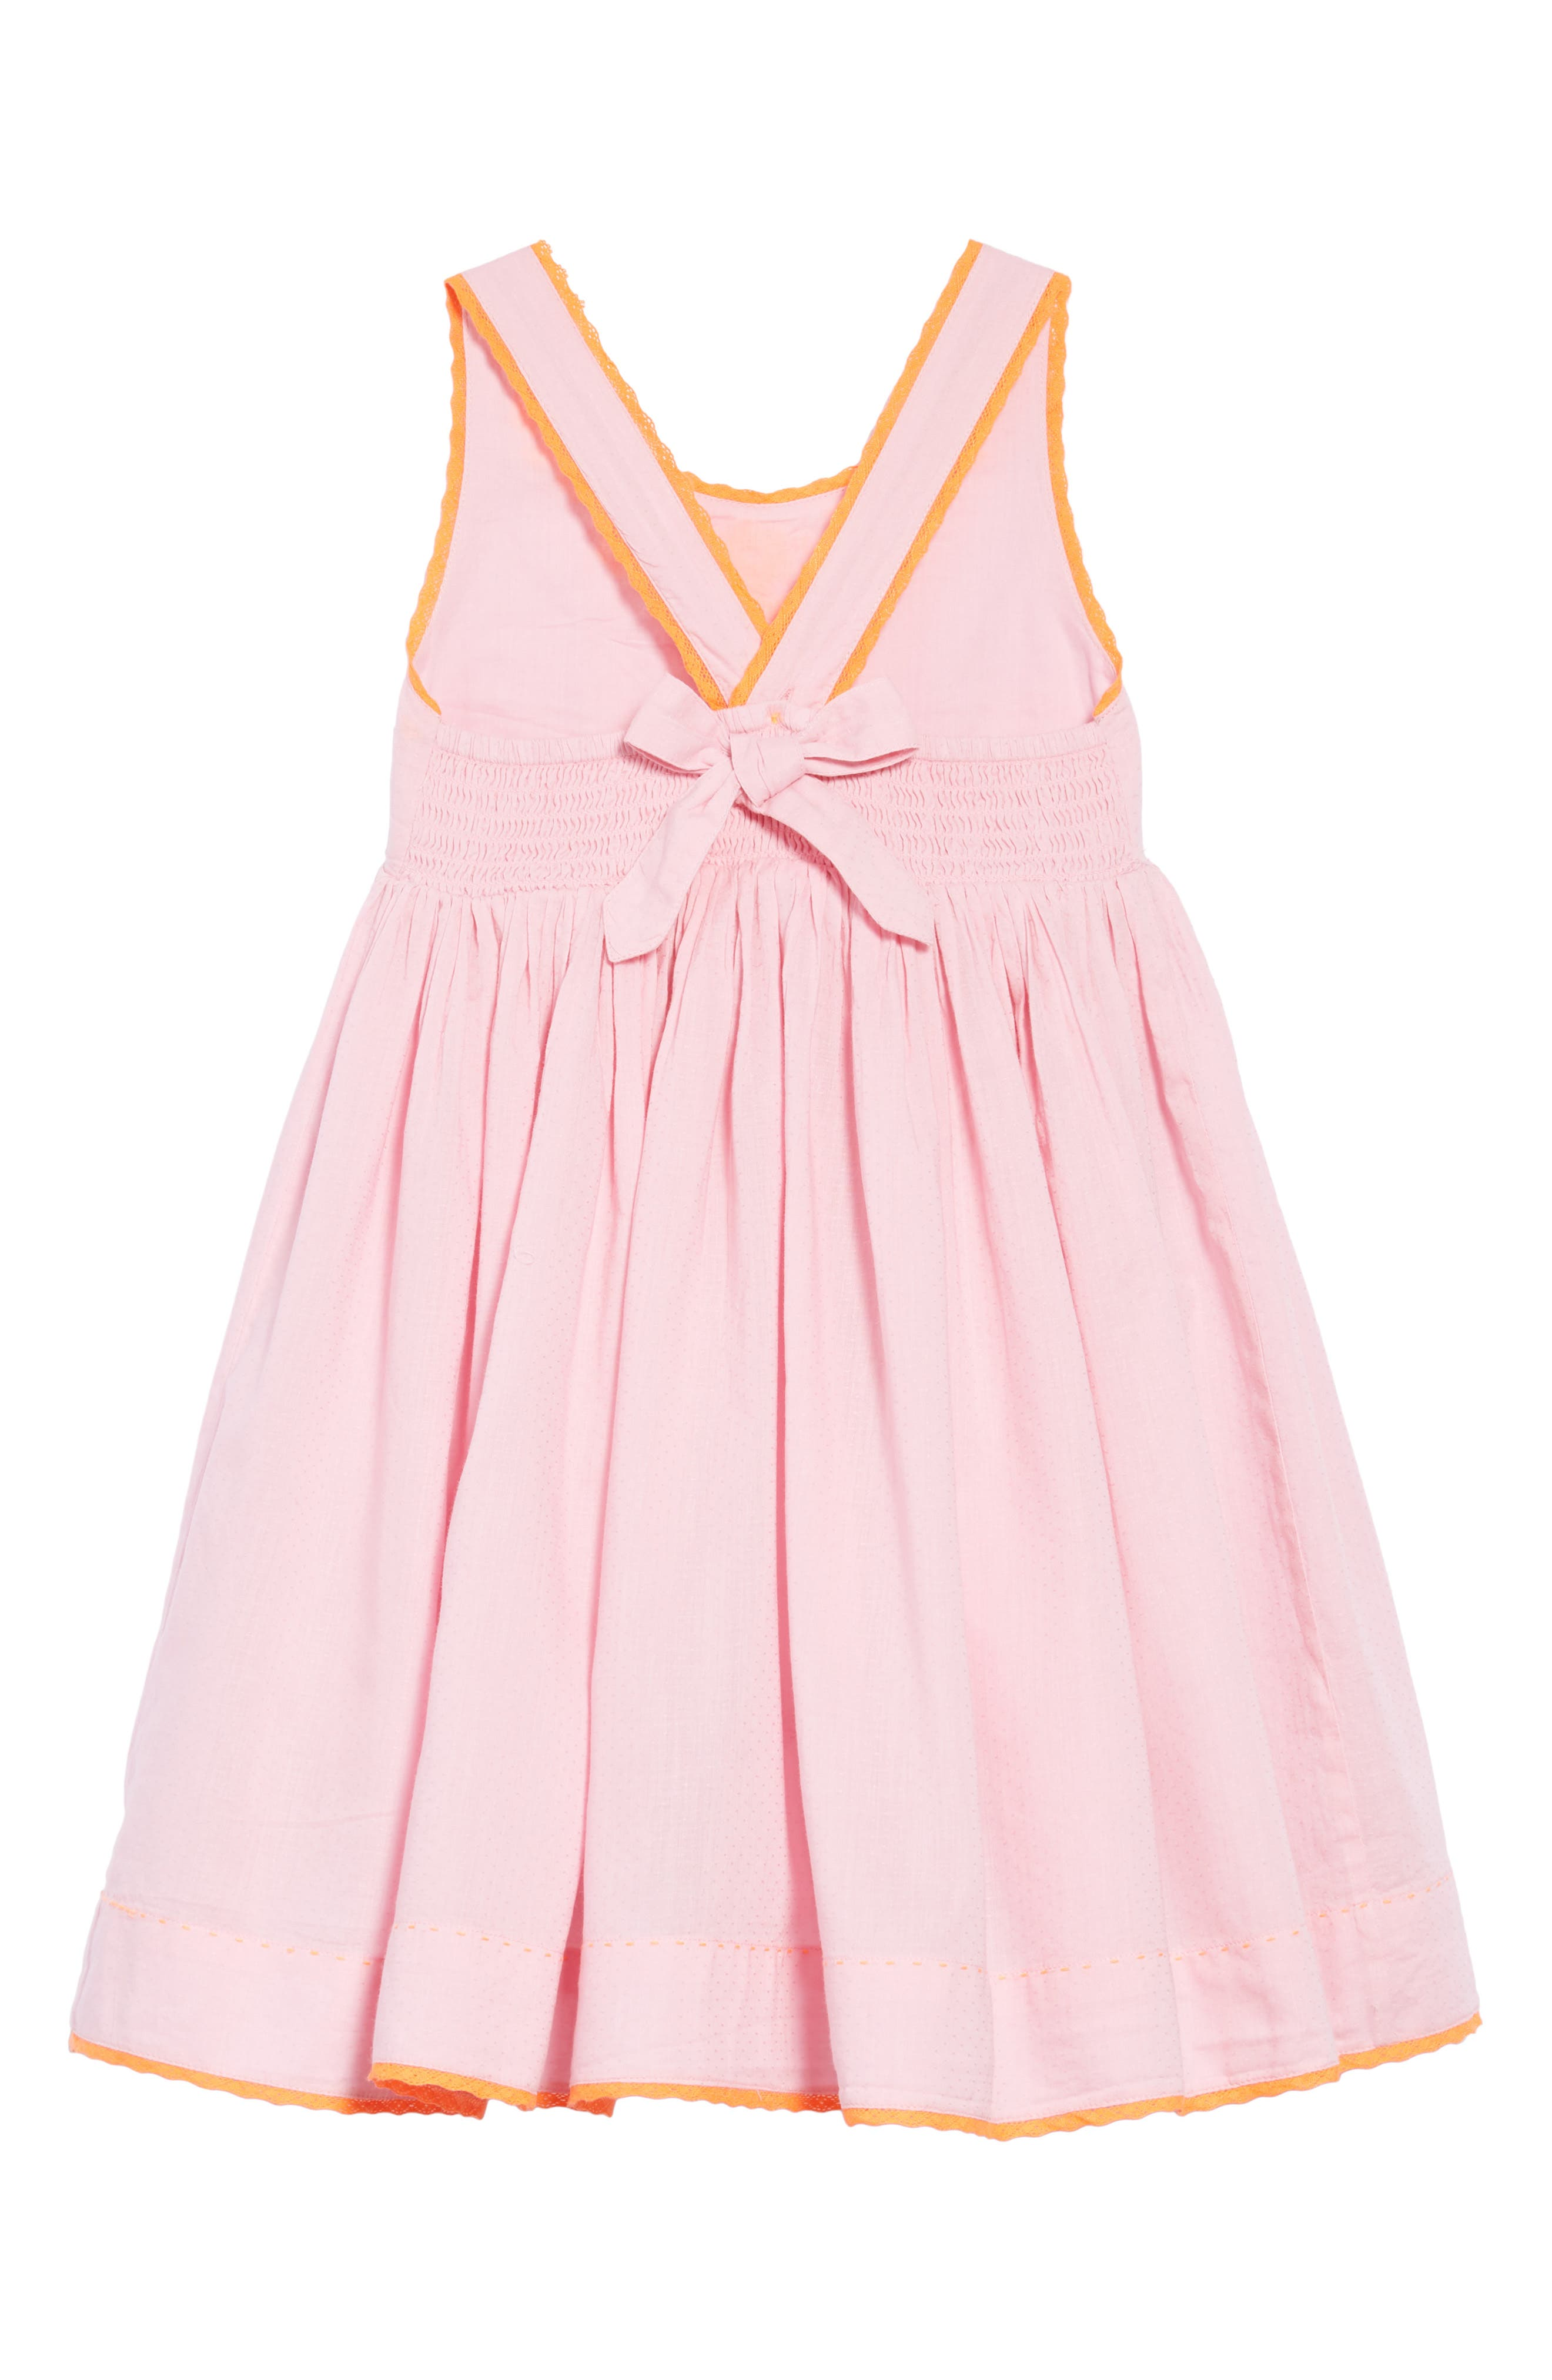 Woven Embroidered Dress,                             Alternate thumbnail 2, color,                             Rosebud Pink